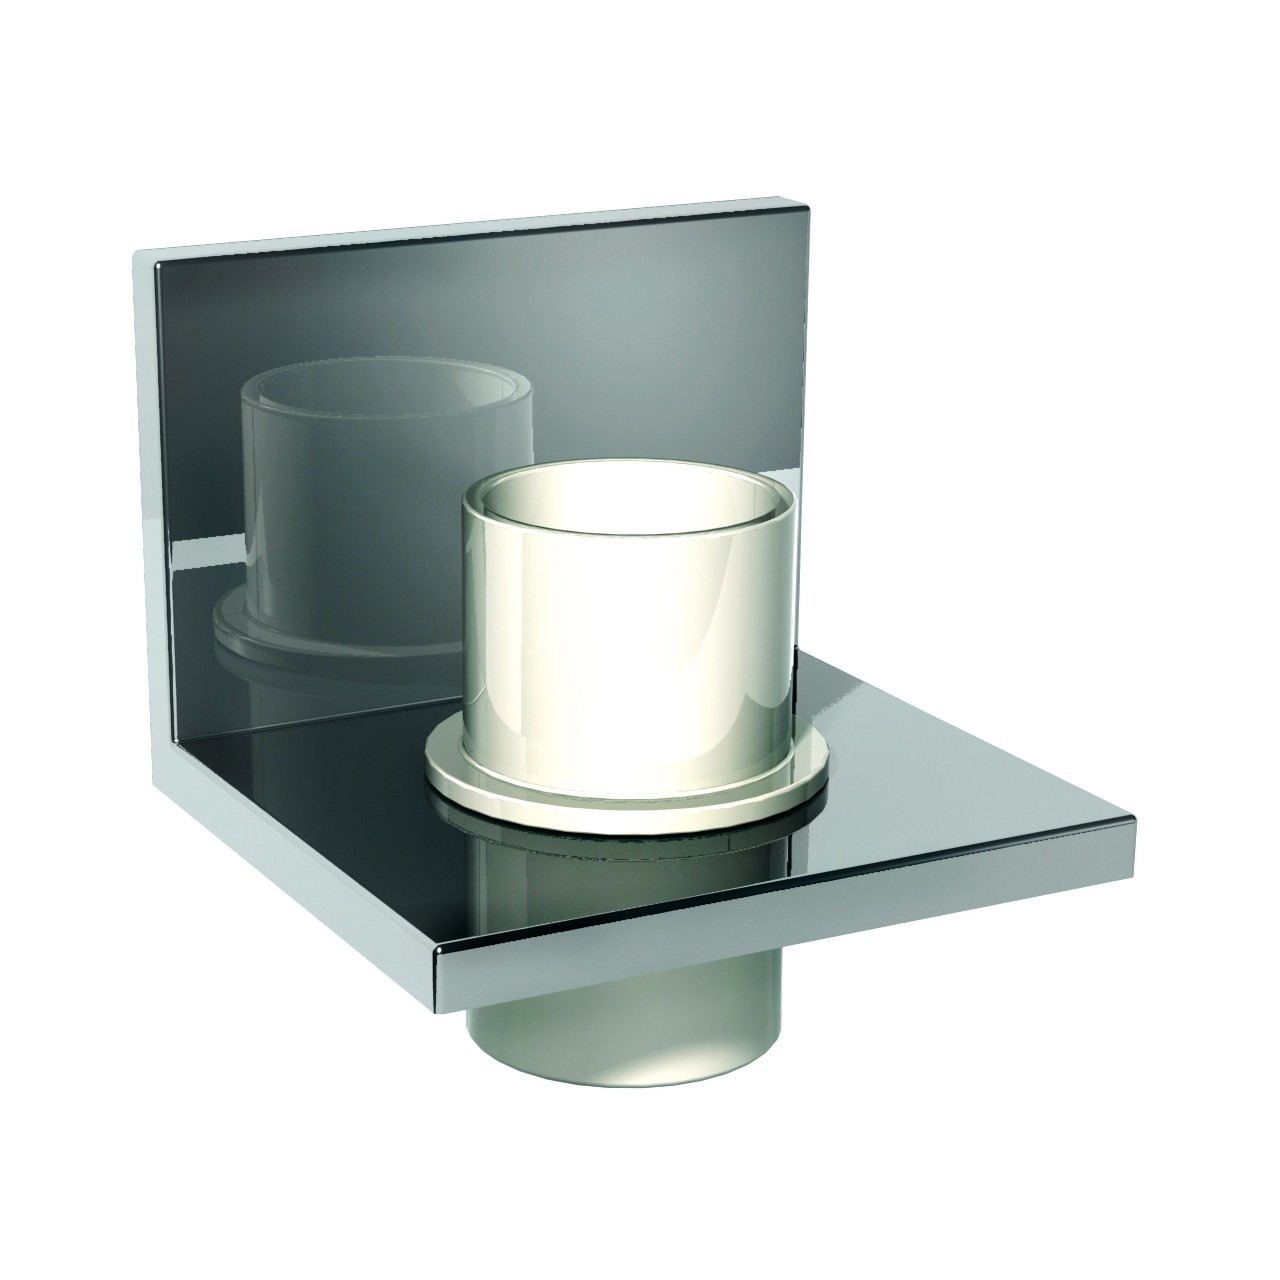 Fittings - Cup Holder